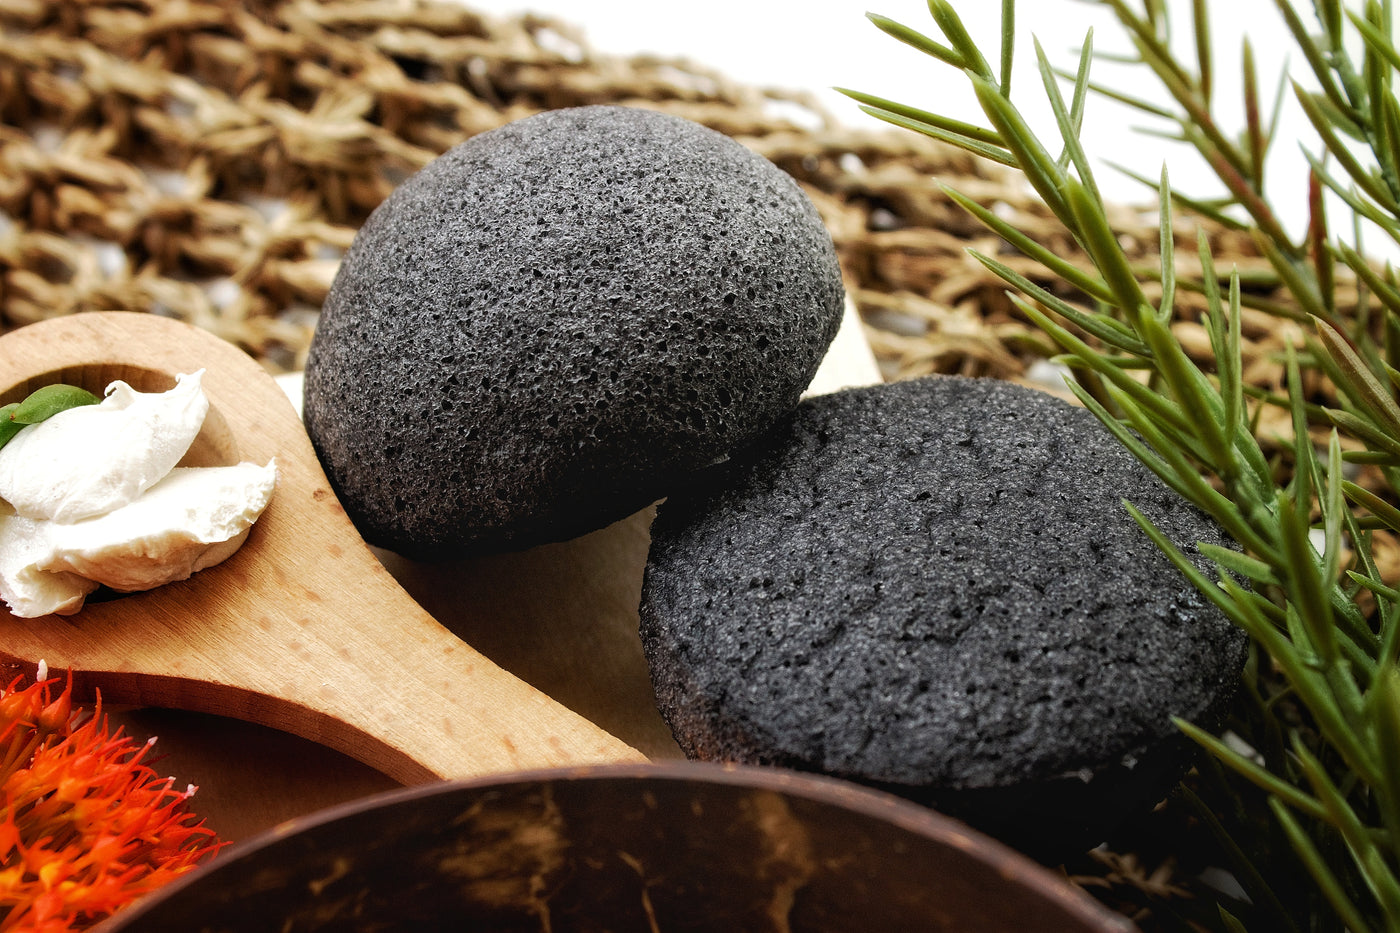 Natural Charcoal Konjac Sponge - what is it?